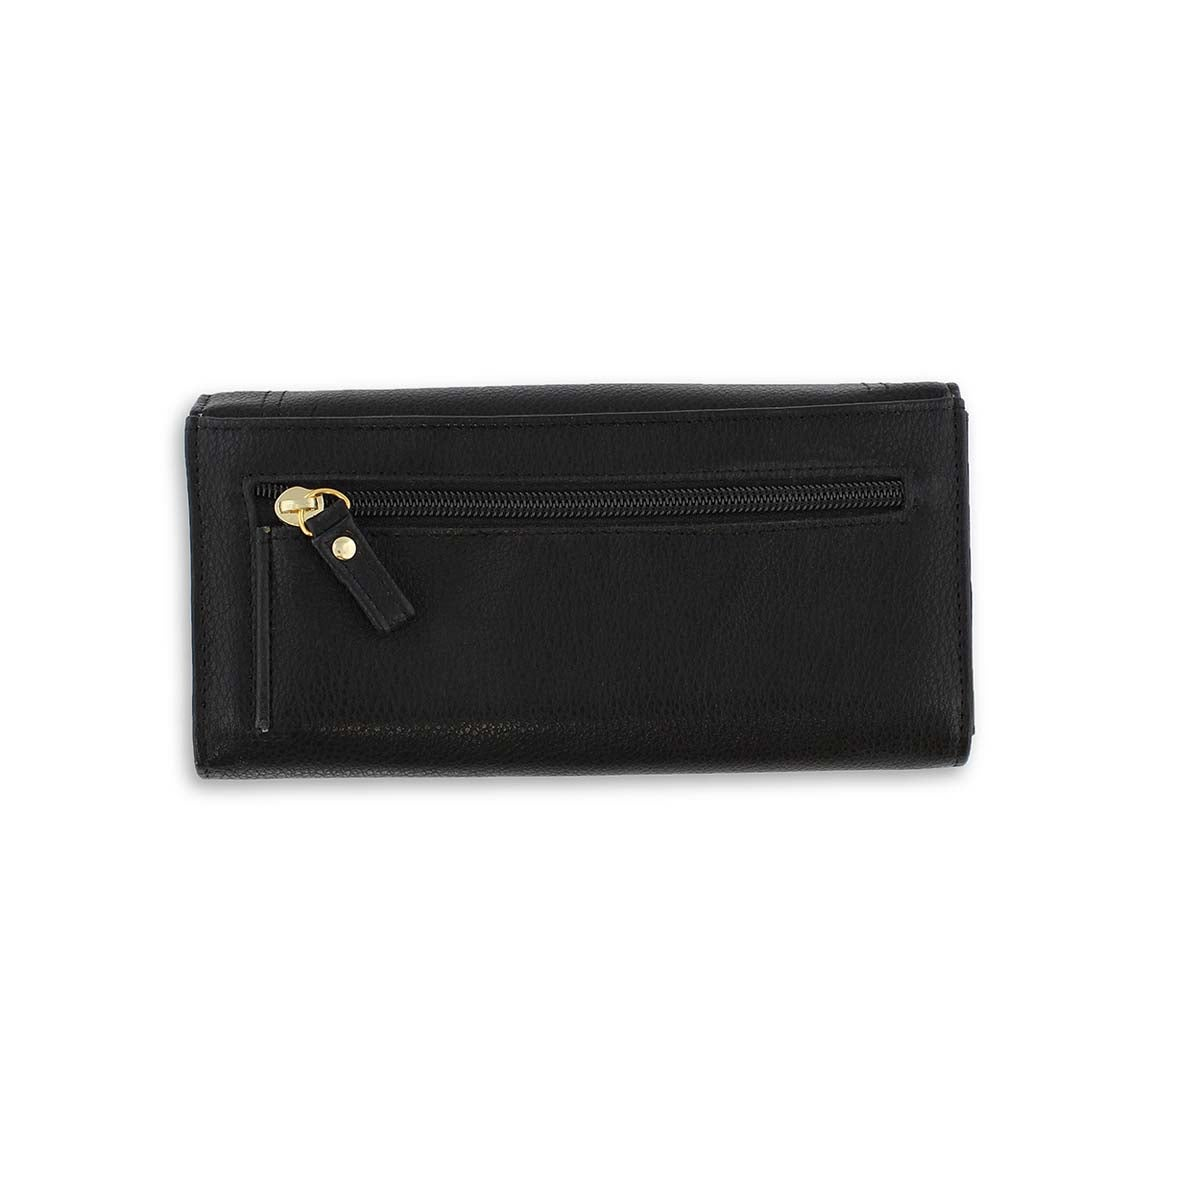 Lds Treasure Lock black trifold wallet